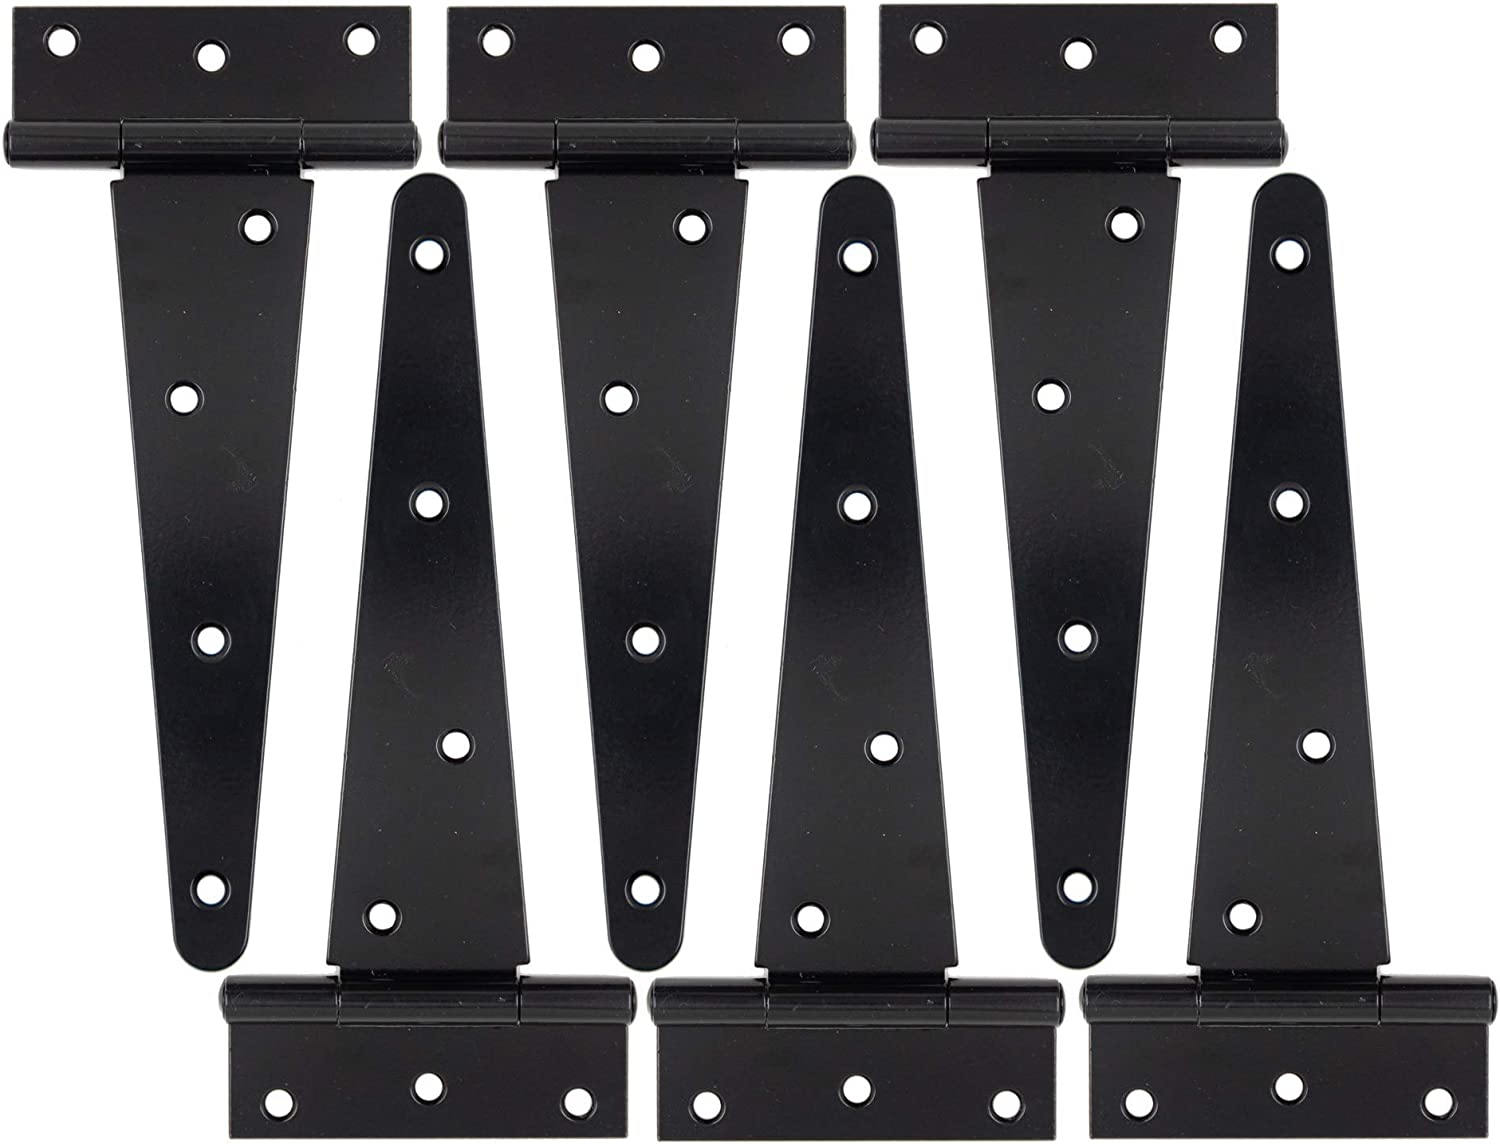 HLMOptimo Heavy Duty T Hinge Strap Super special price Shed Sale special price Tee